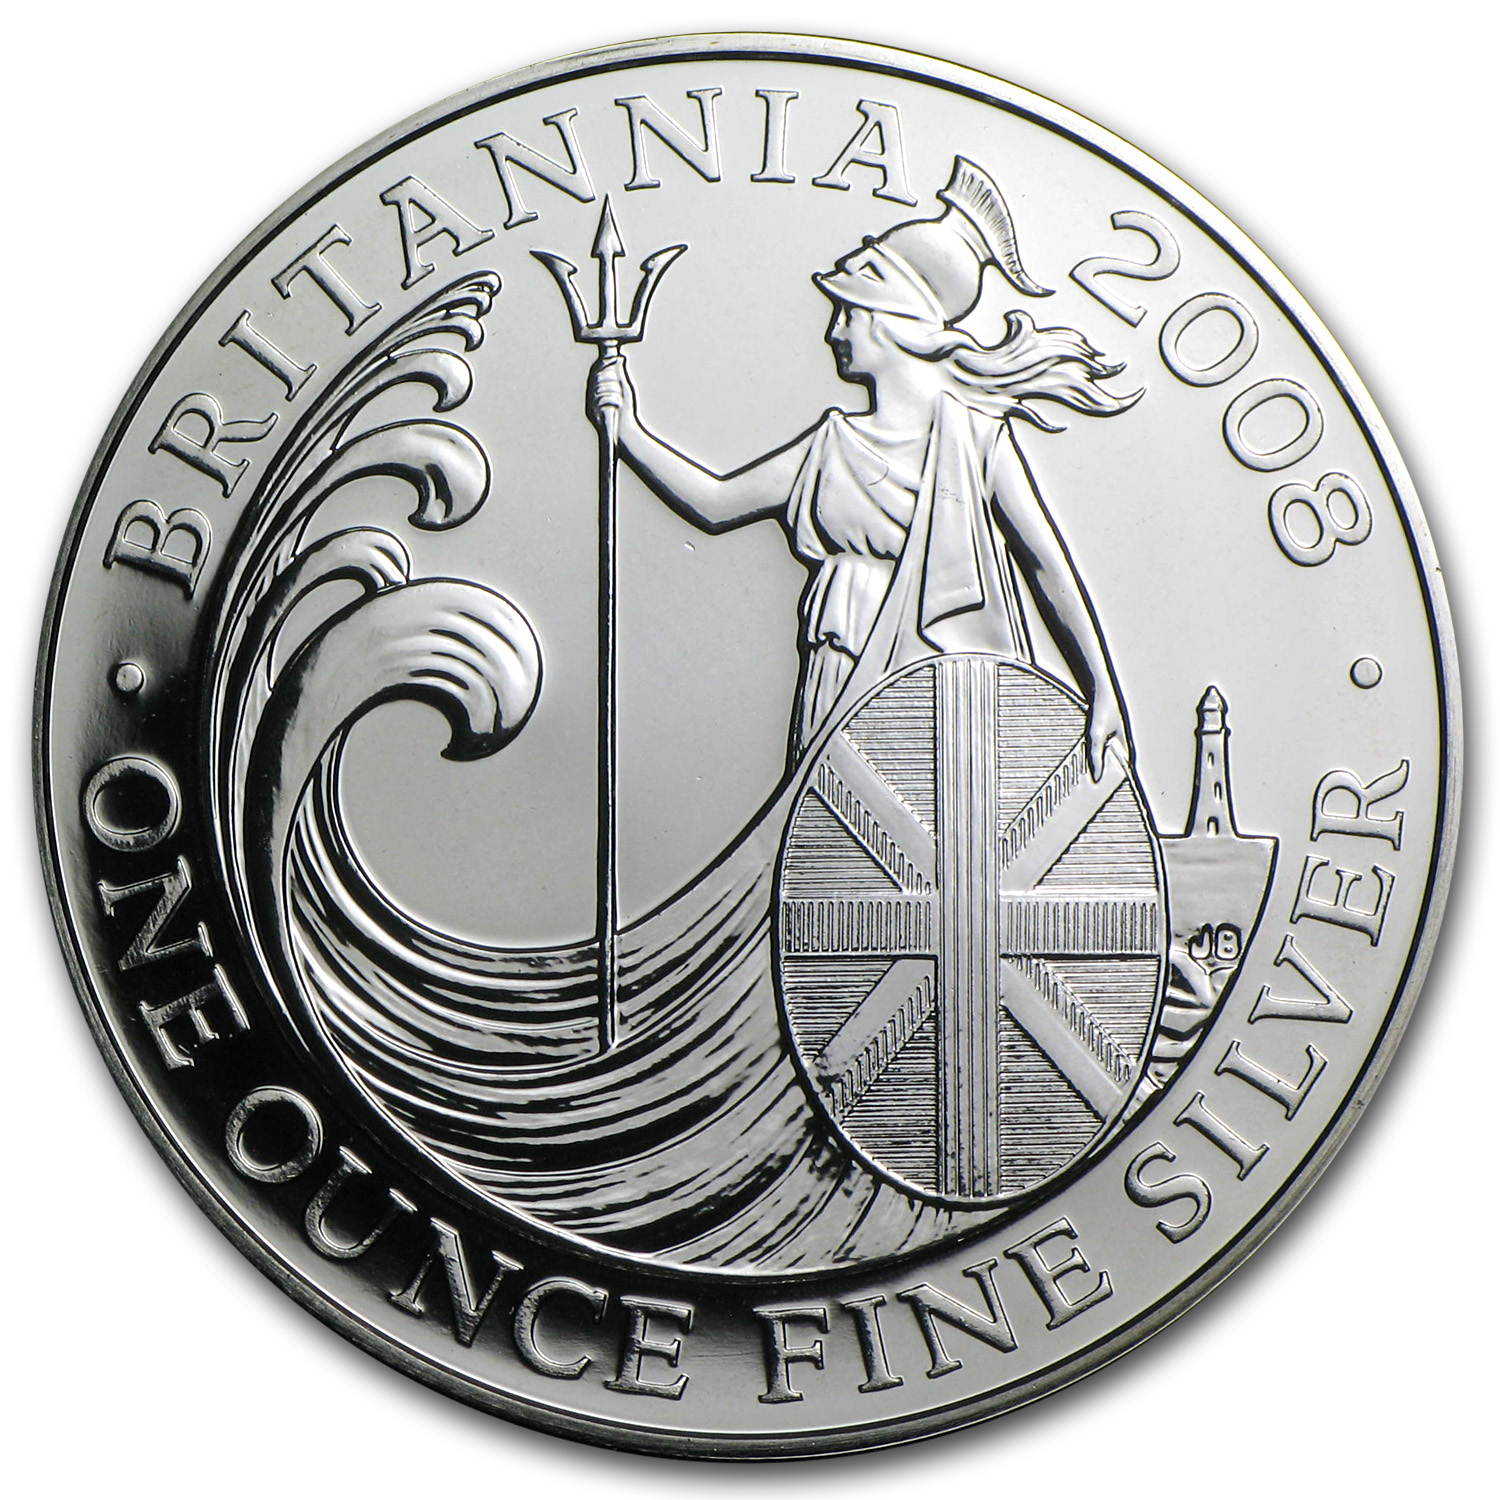 2008 Great Britain 1 oz Silver Britannia BU